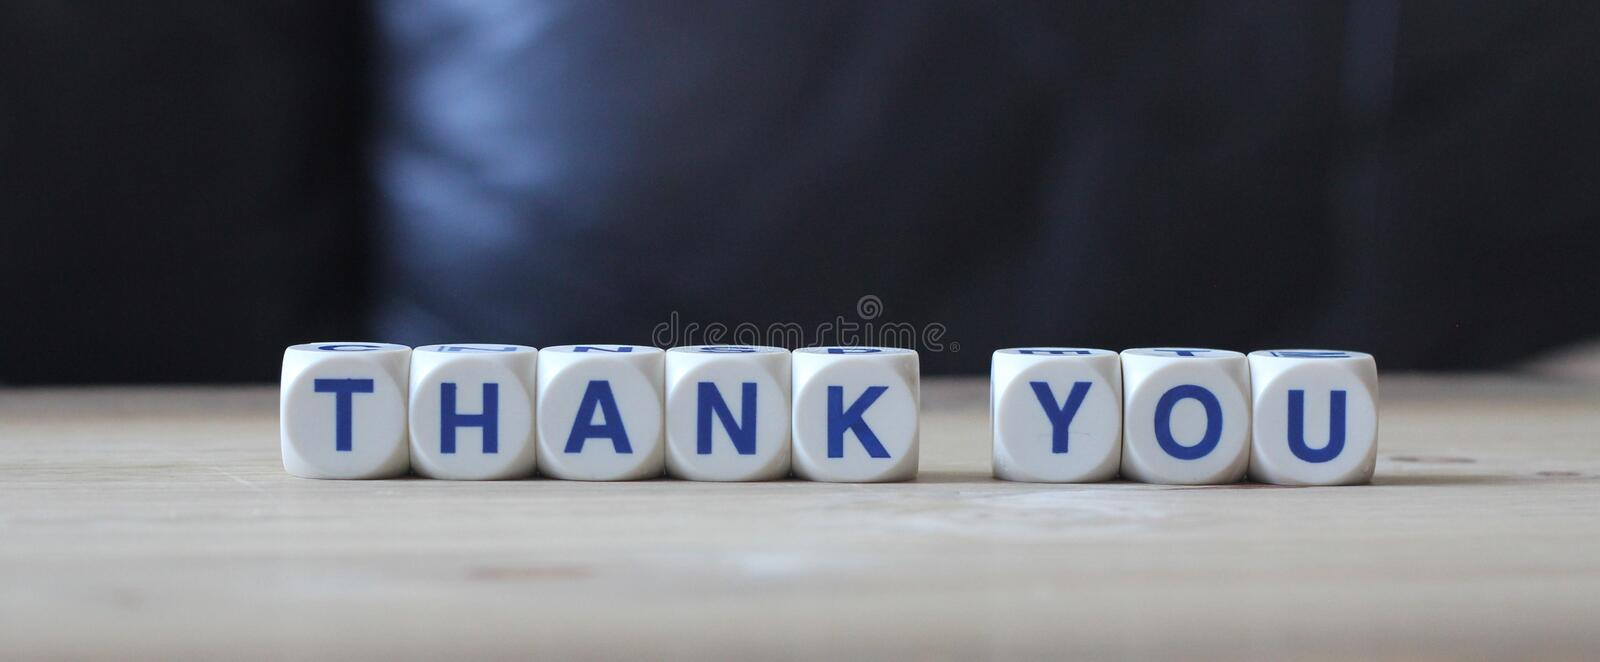 Thank you. Letters cube wordings on wood background stock image